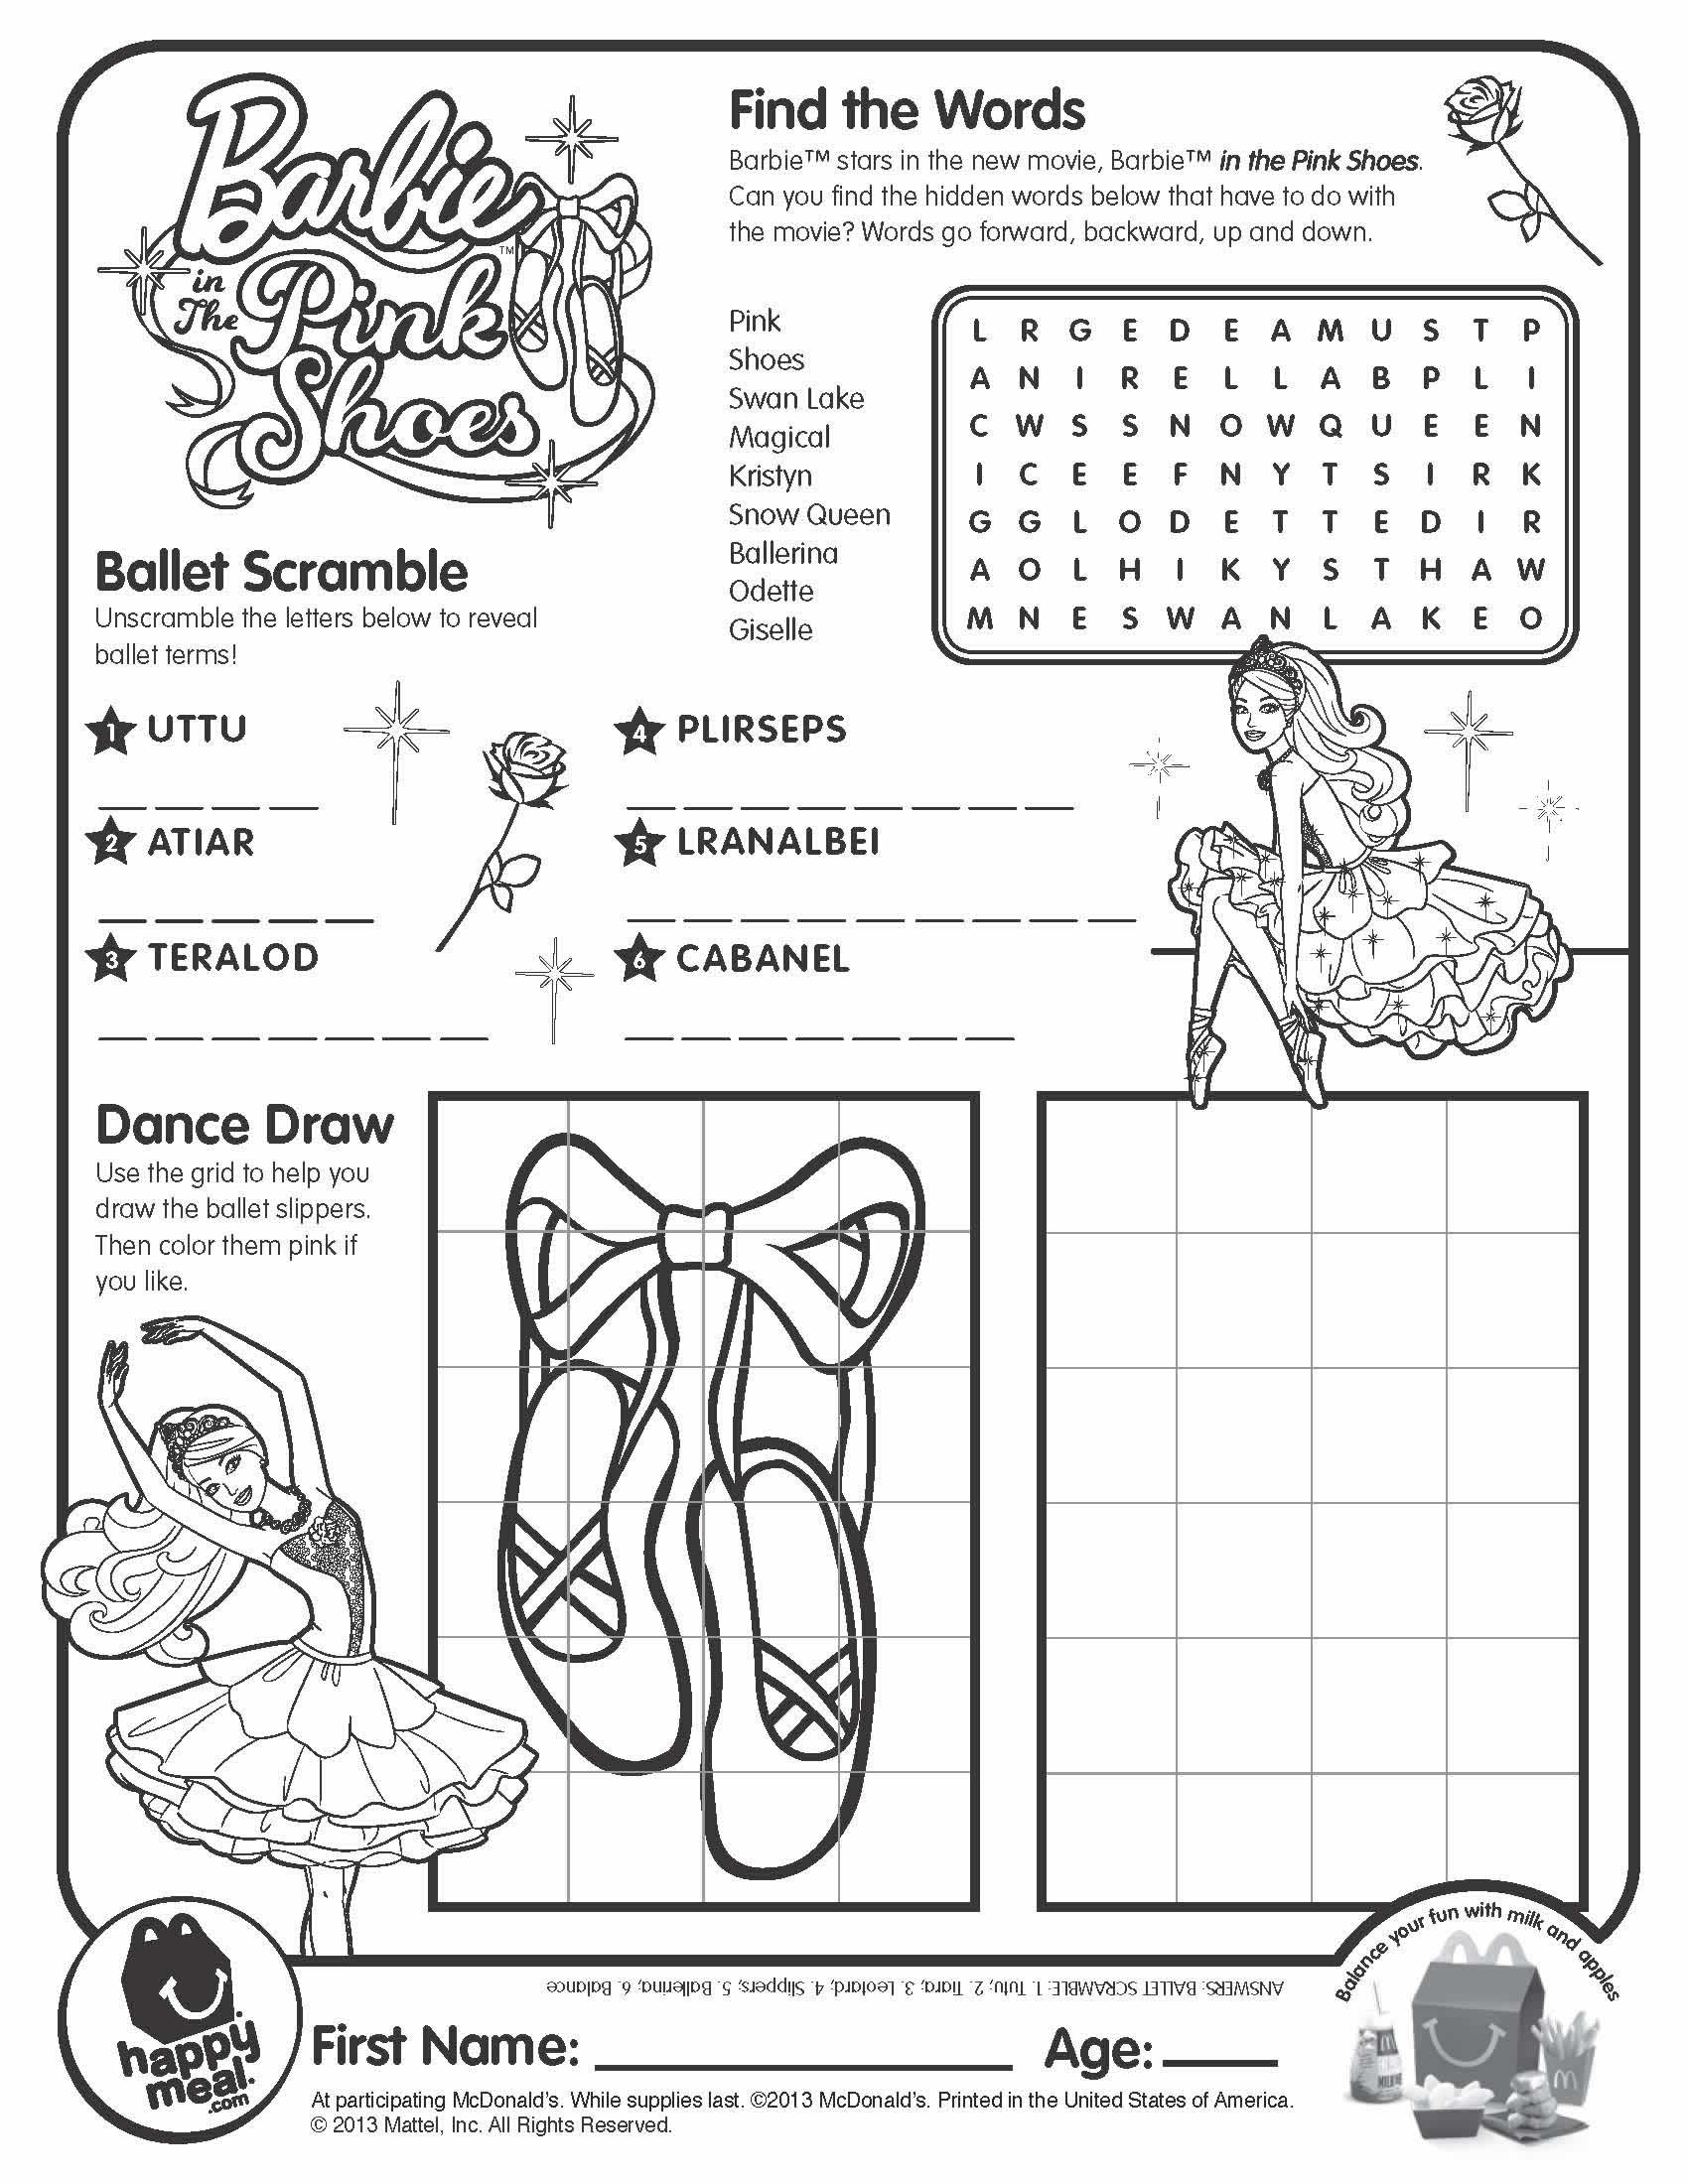 barbie high heels coloring pages - photo#29